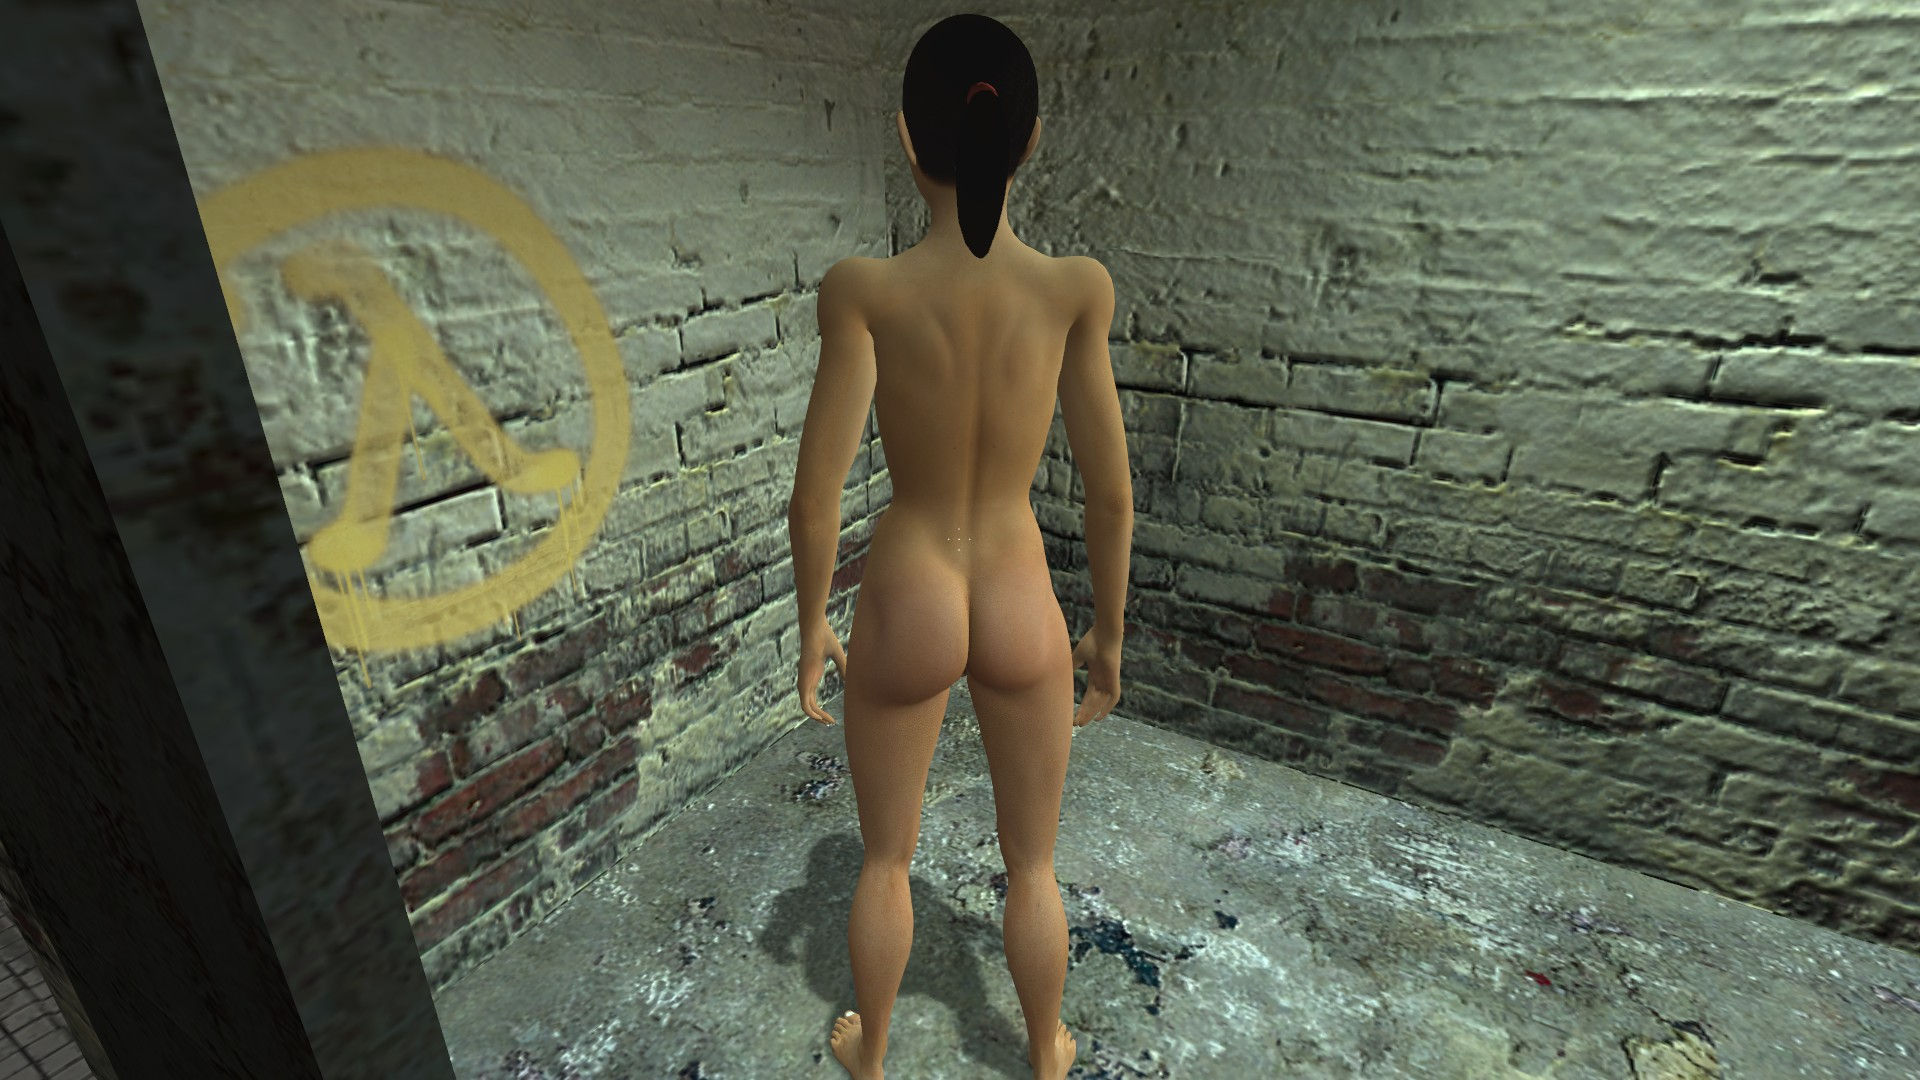 Half life 2 people naked sexy gallery